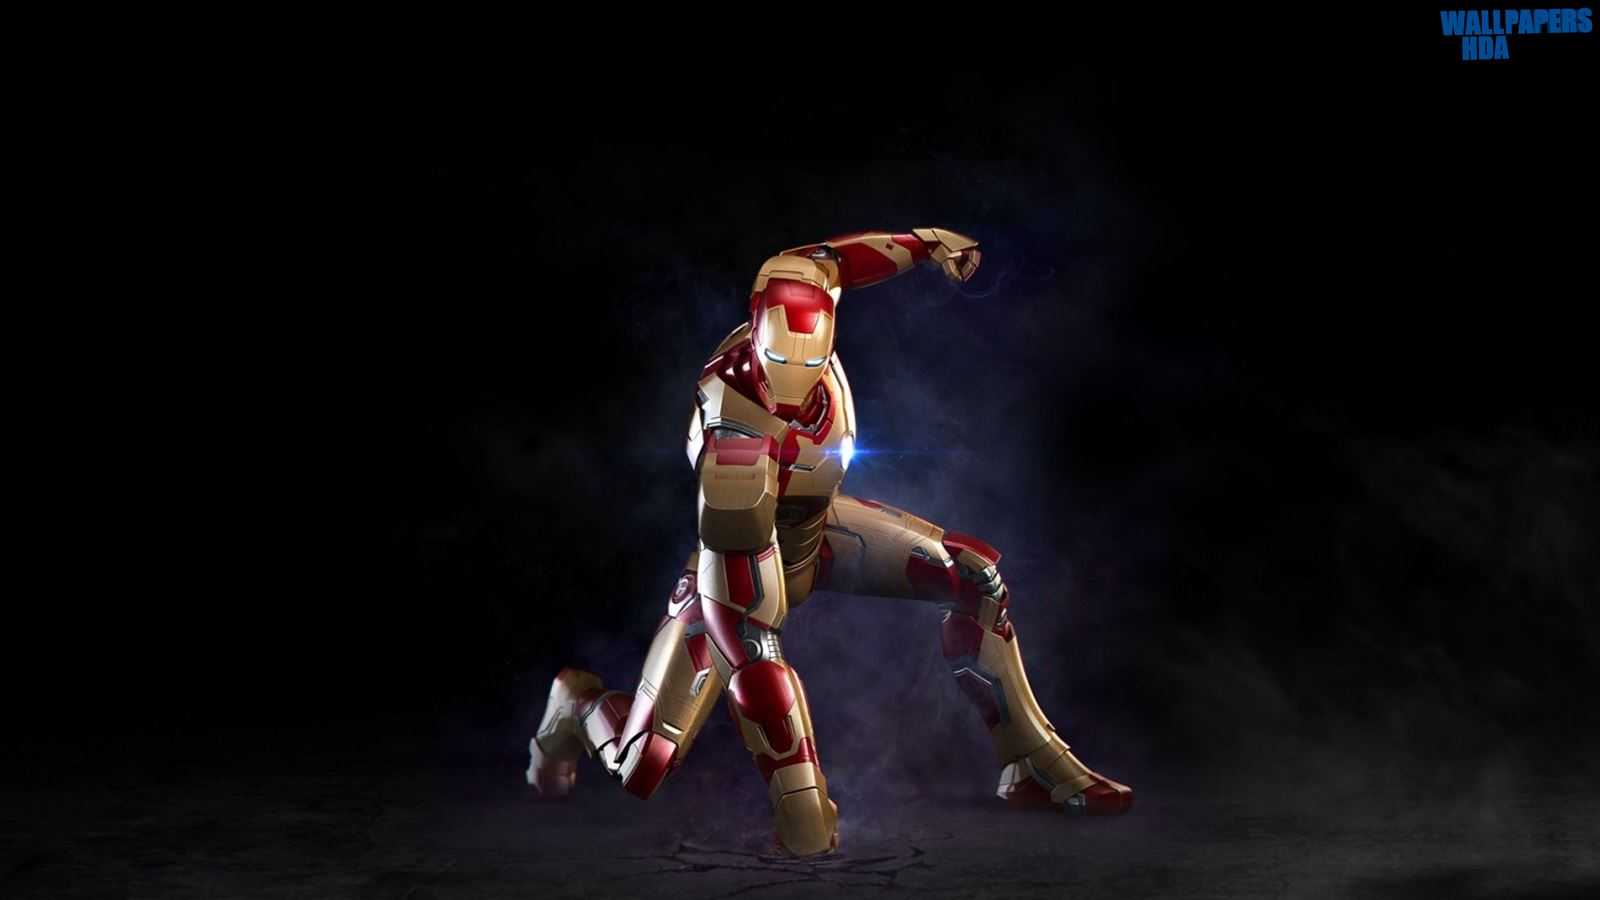 Iron man 3 background wallpaper 1600x900